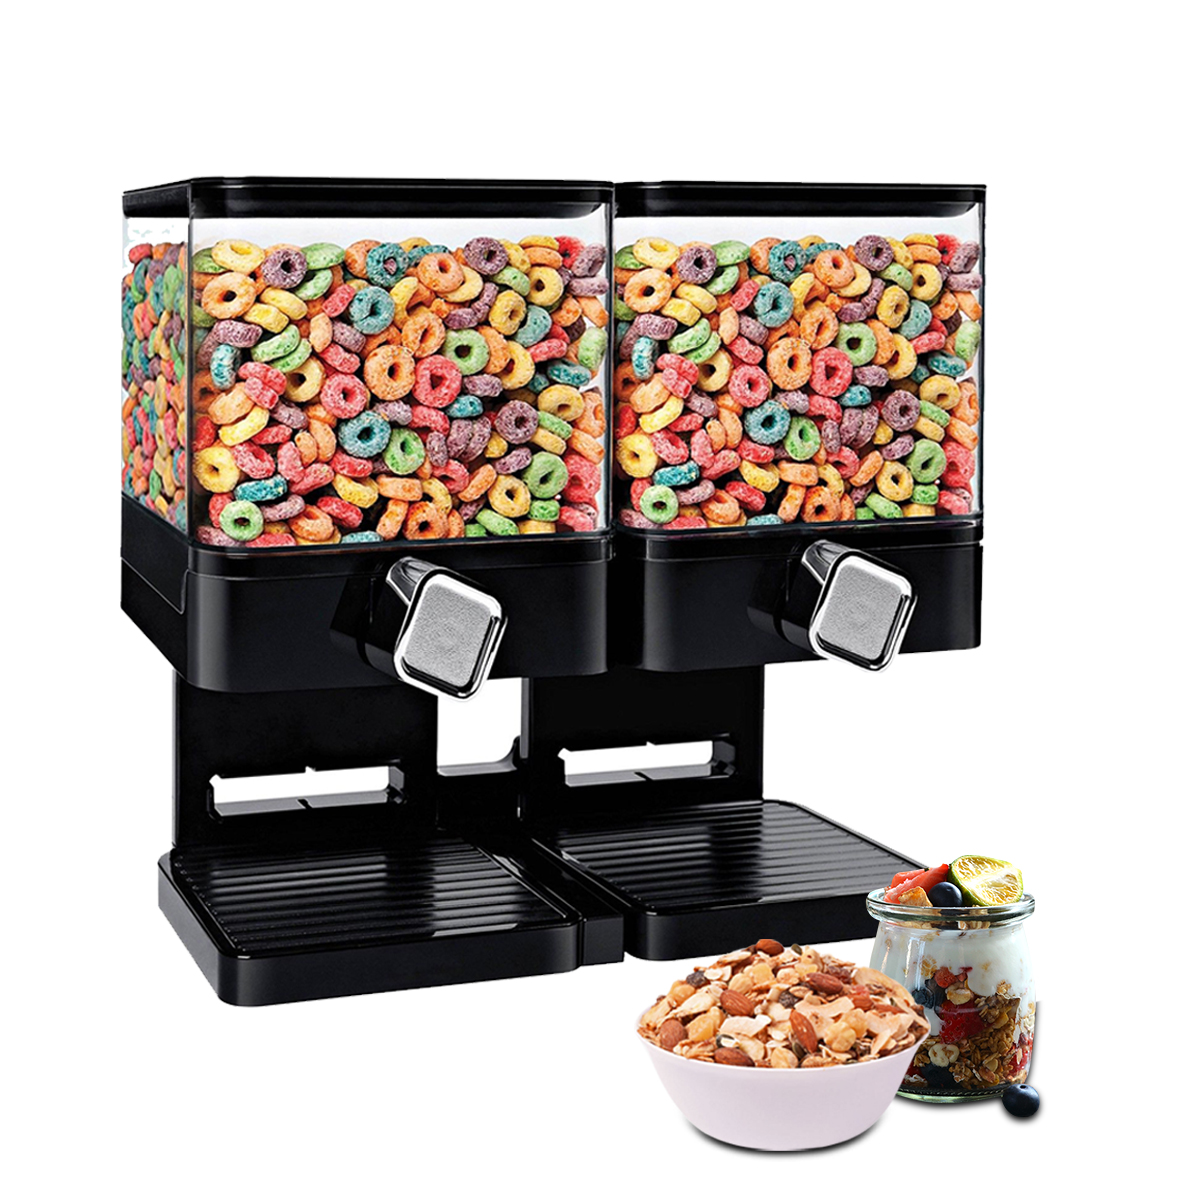 Plastic double cereal dispenser storage dry food snack container plastic double cereal dispenser storage dry food snack container wall mounted kitchen canister fresh contain box for kids food in storage bottles jars ccuart Images